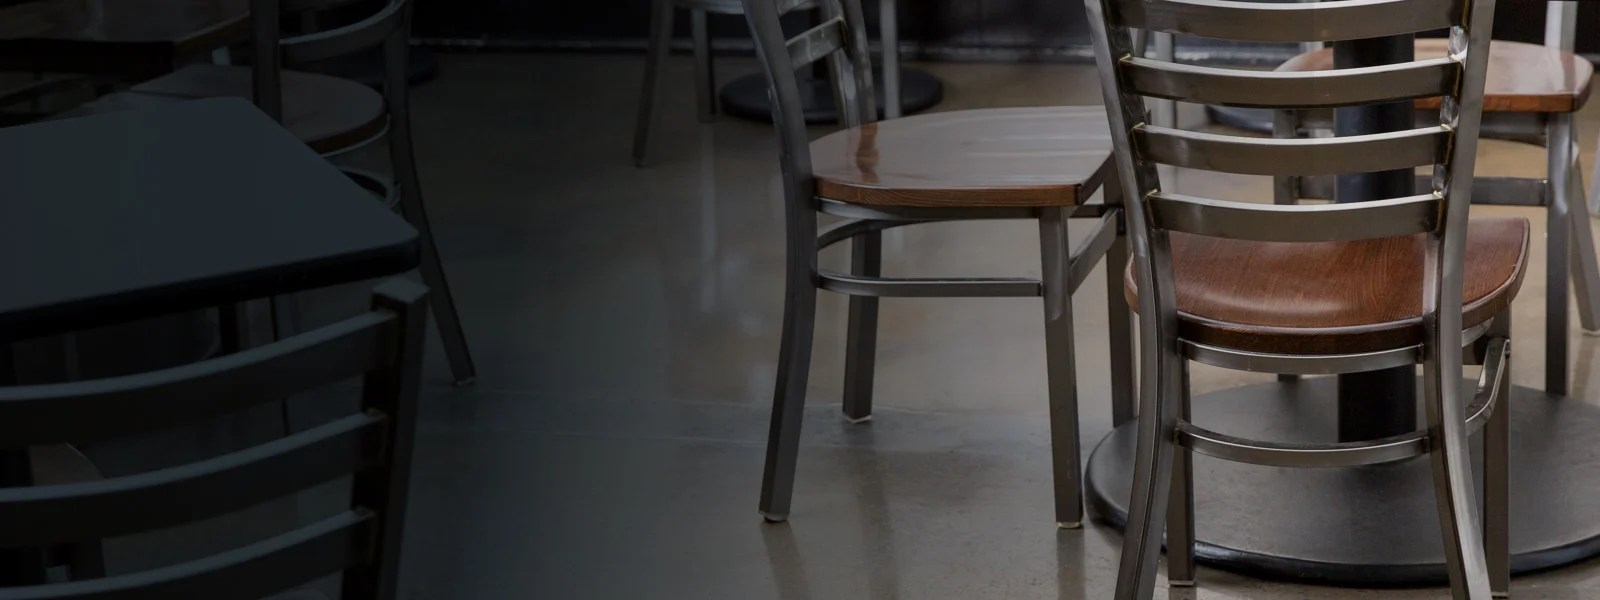 Restaurant Furniture: Tables and Chairs, Bar Stools